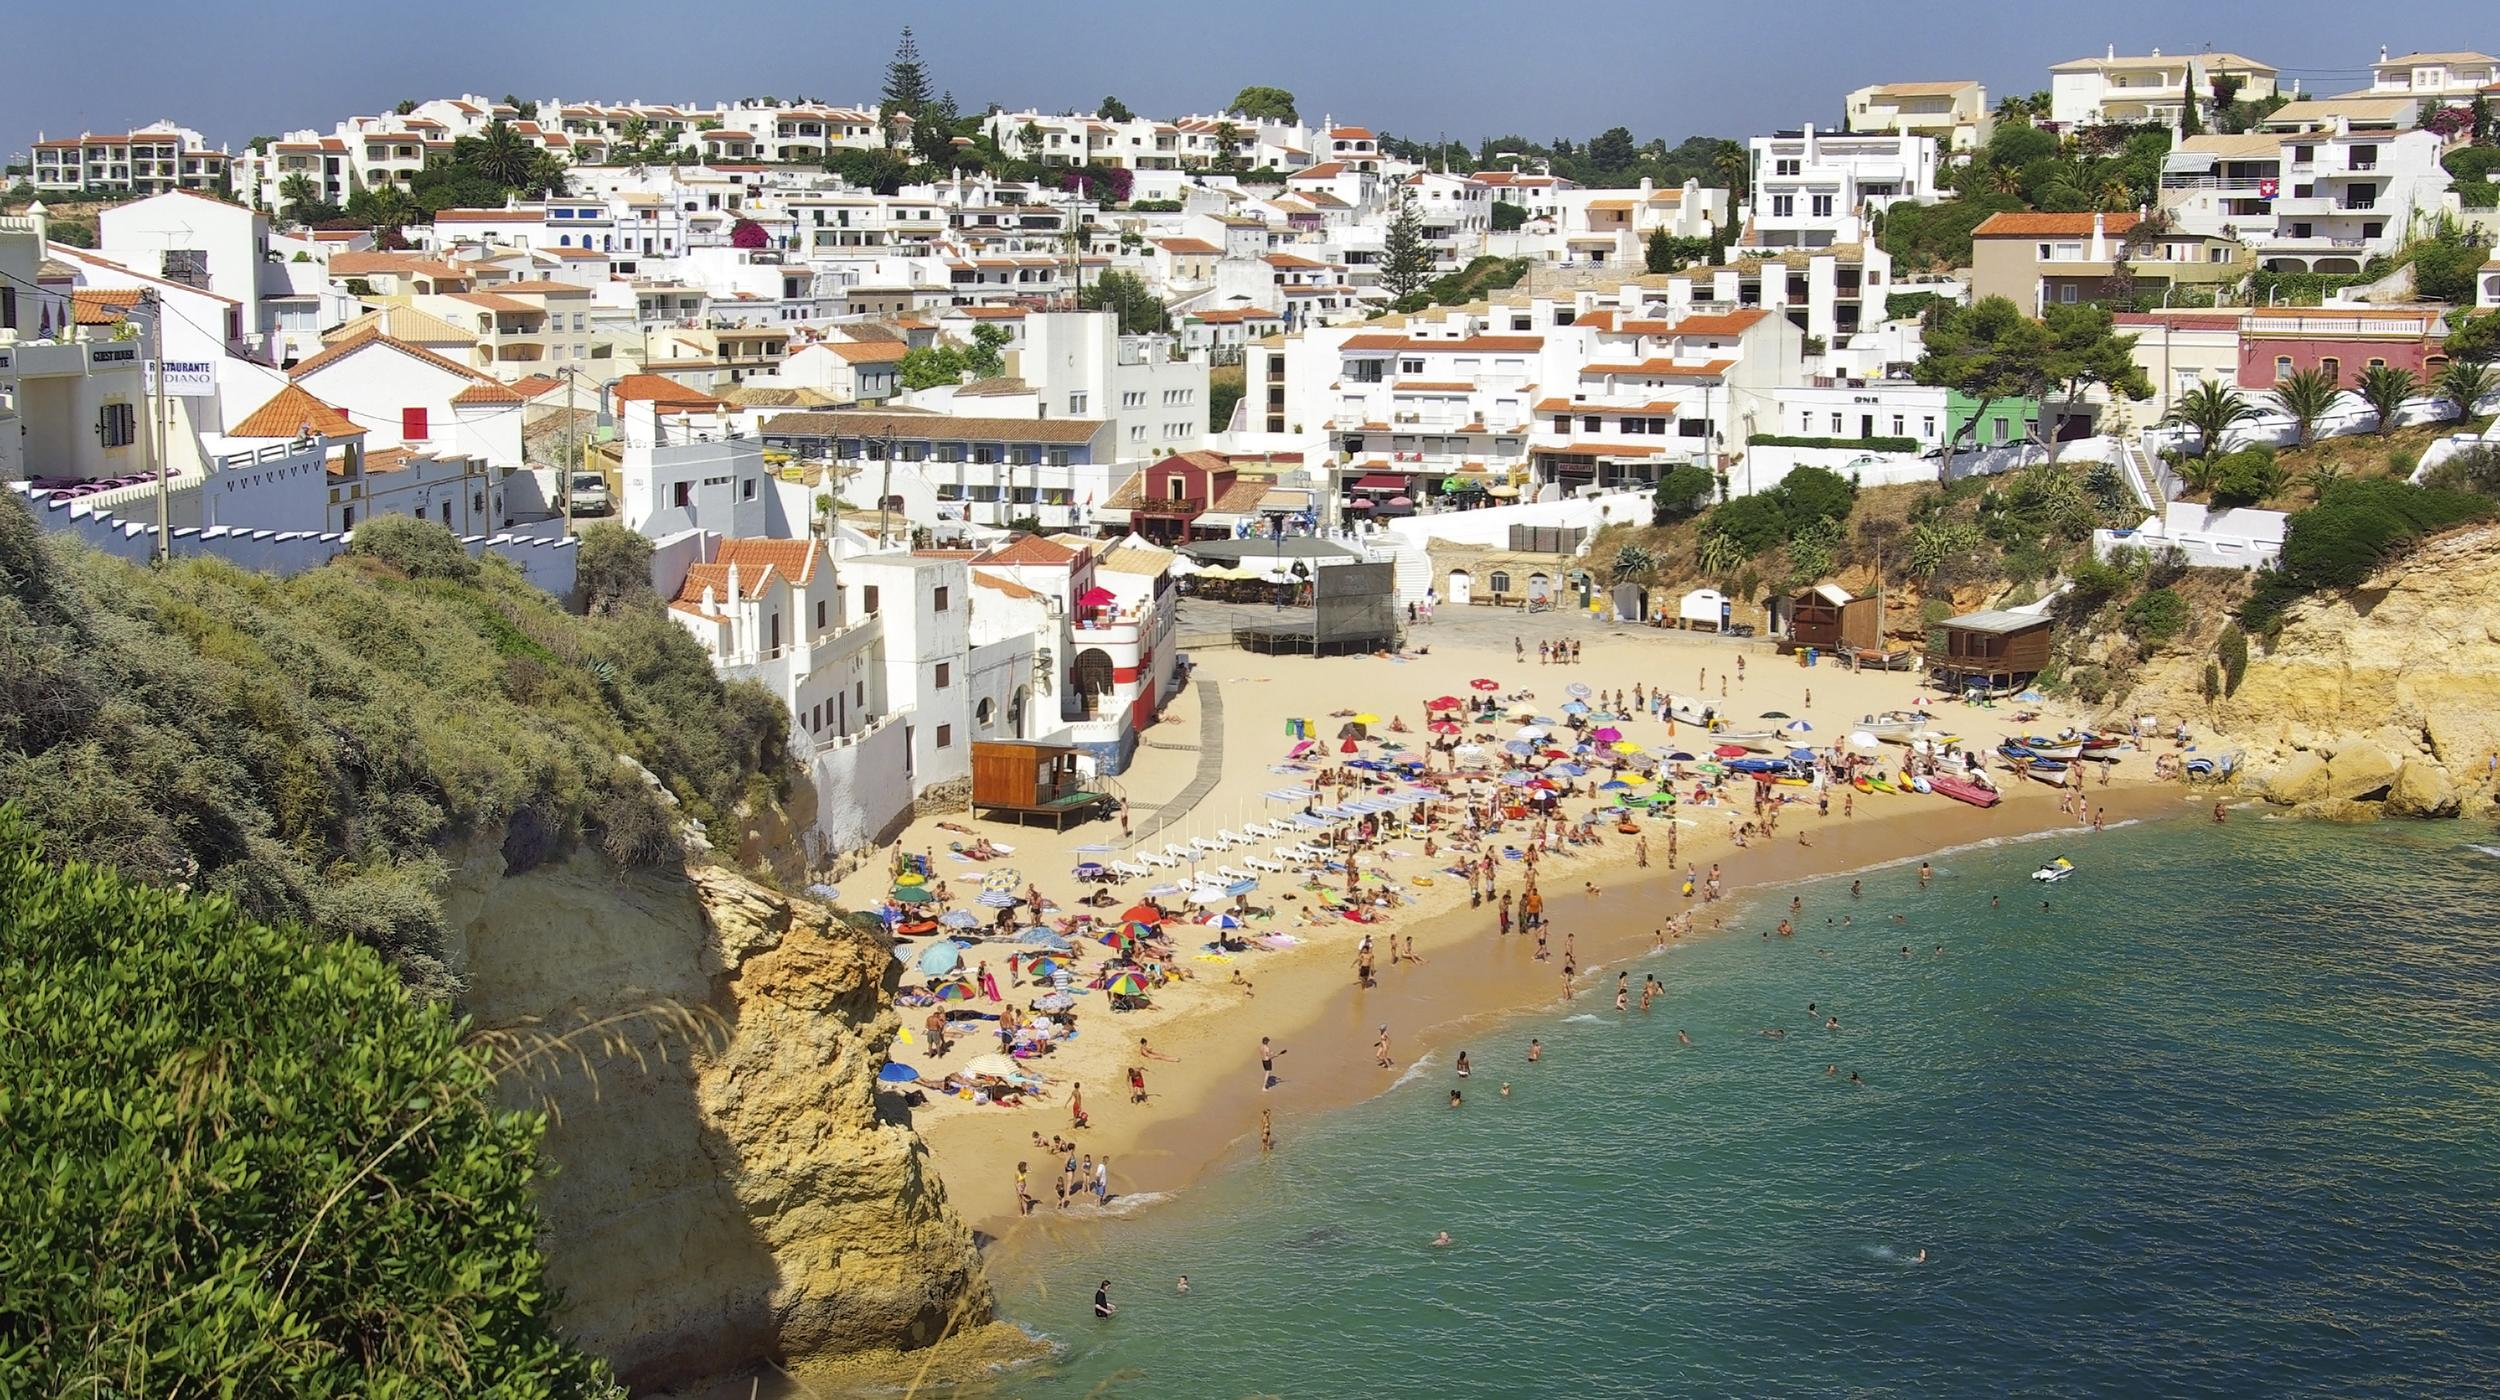 <p>A study by MGM Advantage discovered that Portugal is the 10th most popular dream retirement destination among Brits.</p>  <p>You get the attractions of the sun, a more relaxed way of life, lower living costs and cheaper property. You can also benefit from pension arrangements that mean your pension rises with inflation.</p>  <p>And if you choose to, you can spend your time with the enormous expat population, feeling like you never left.</p>